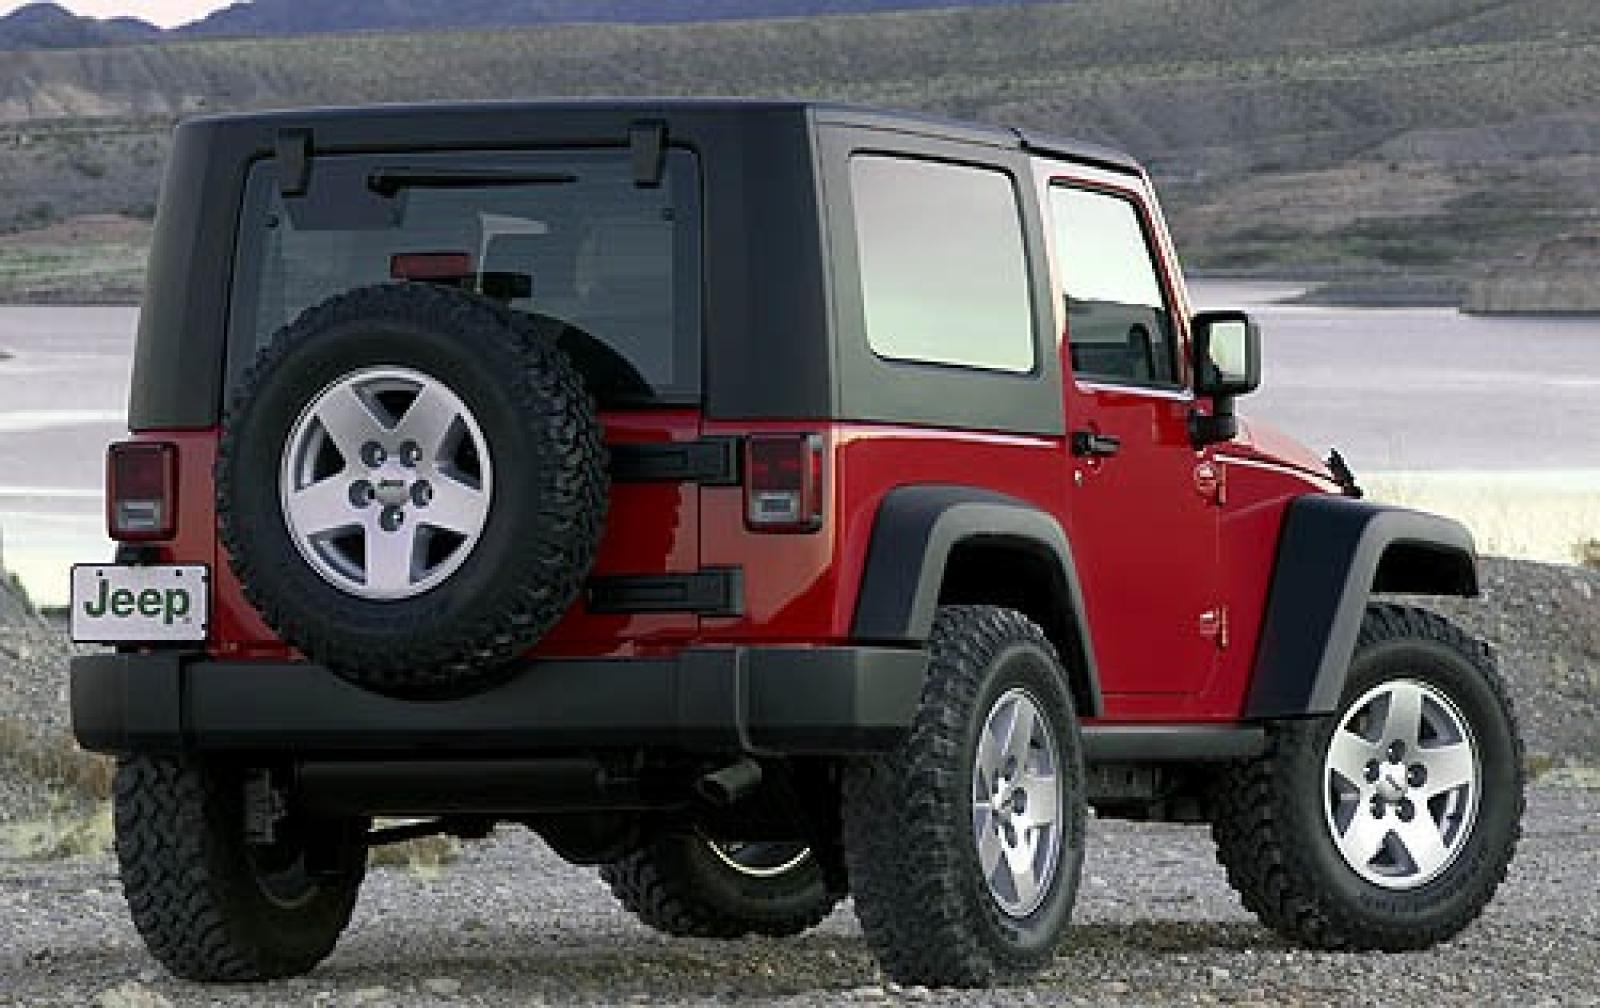 2007 jeep wrangler information and photos zombiedrive. Black Bedroom Furniture Sets. Home Design Ideas